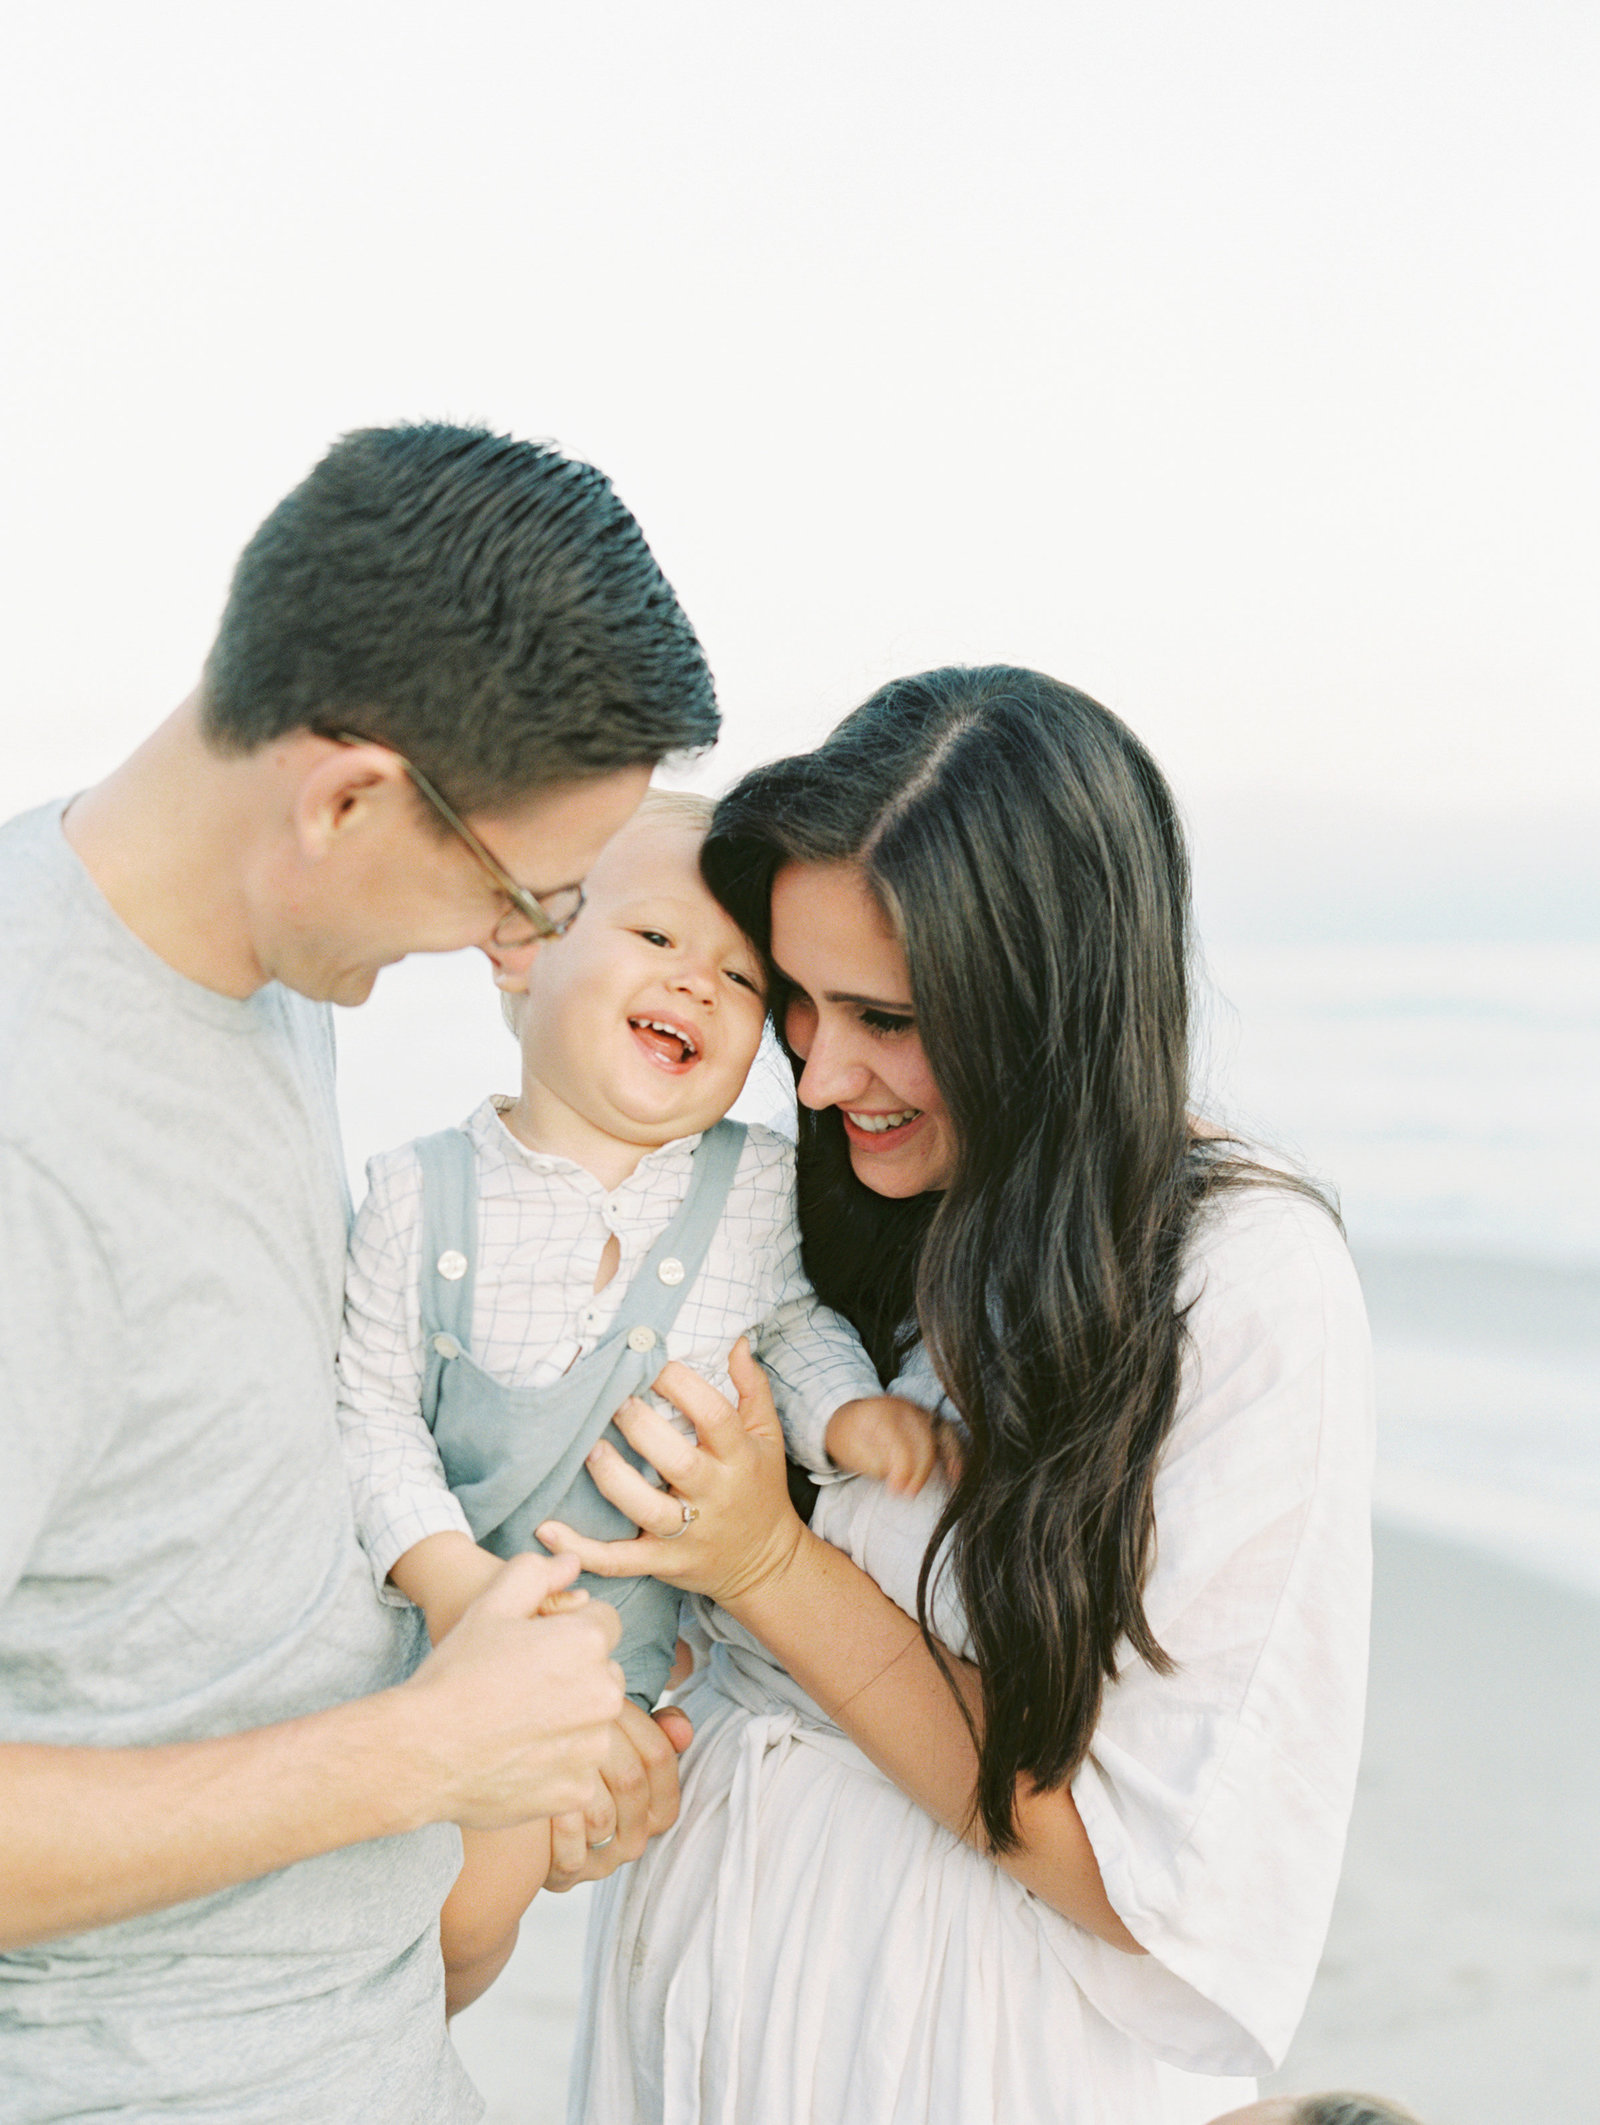 little boy laughing, being held by his mom and dad, they are looking at him and smiling, on the beach